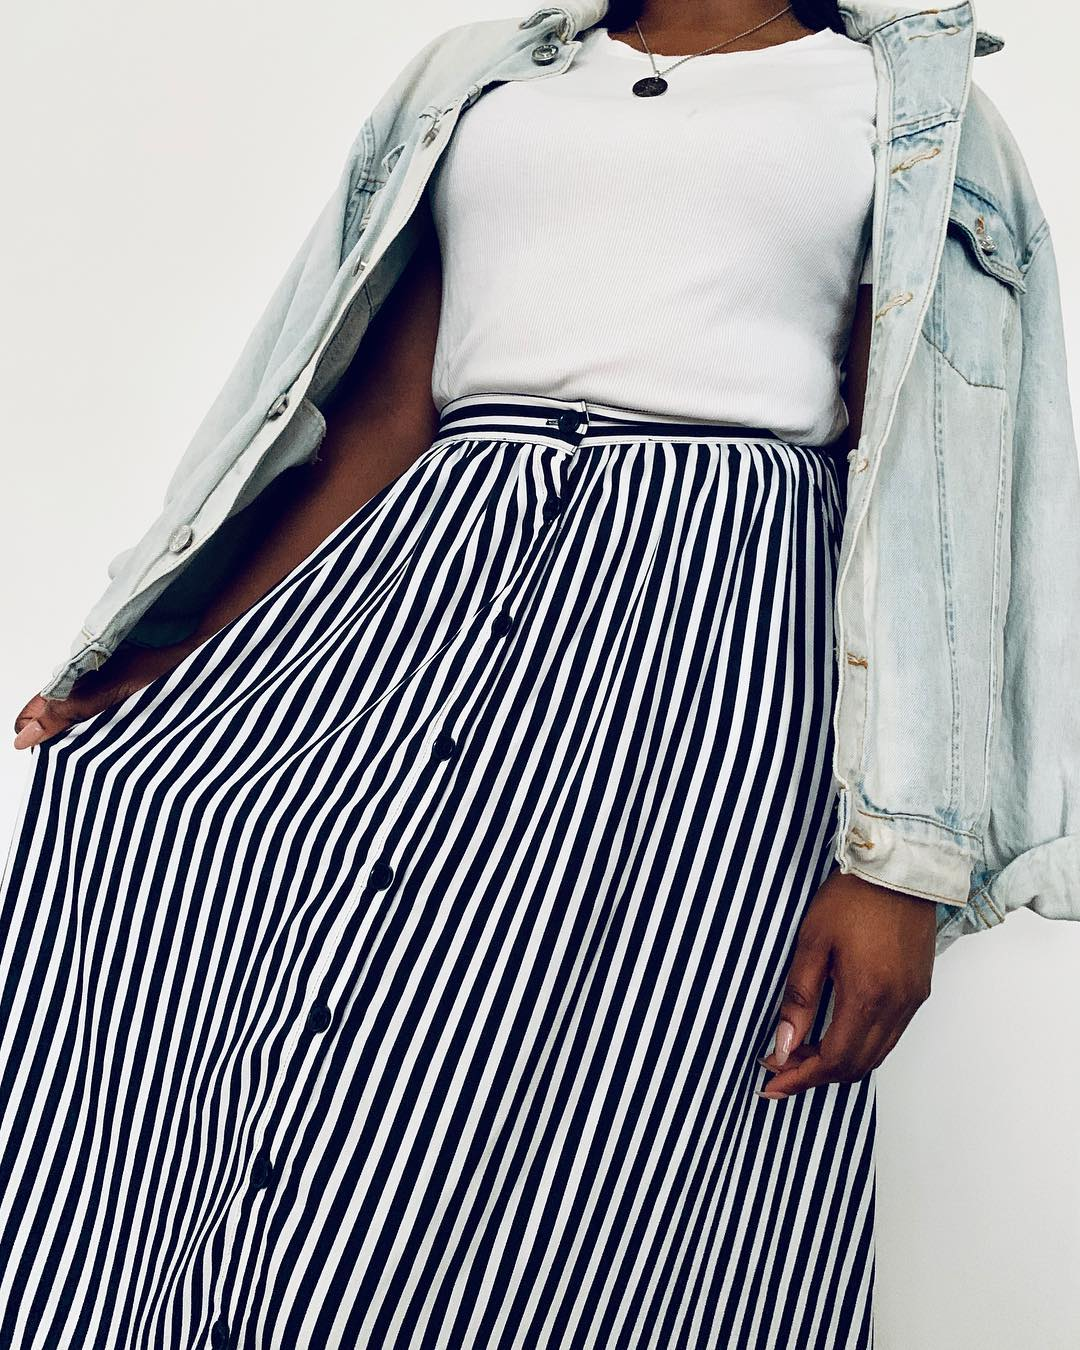 The Spring Skirt We Can't Live Without: Spring 2019 Outfits | Skirts | Skirt Outfits